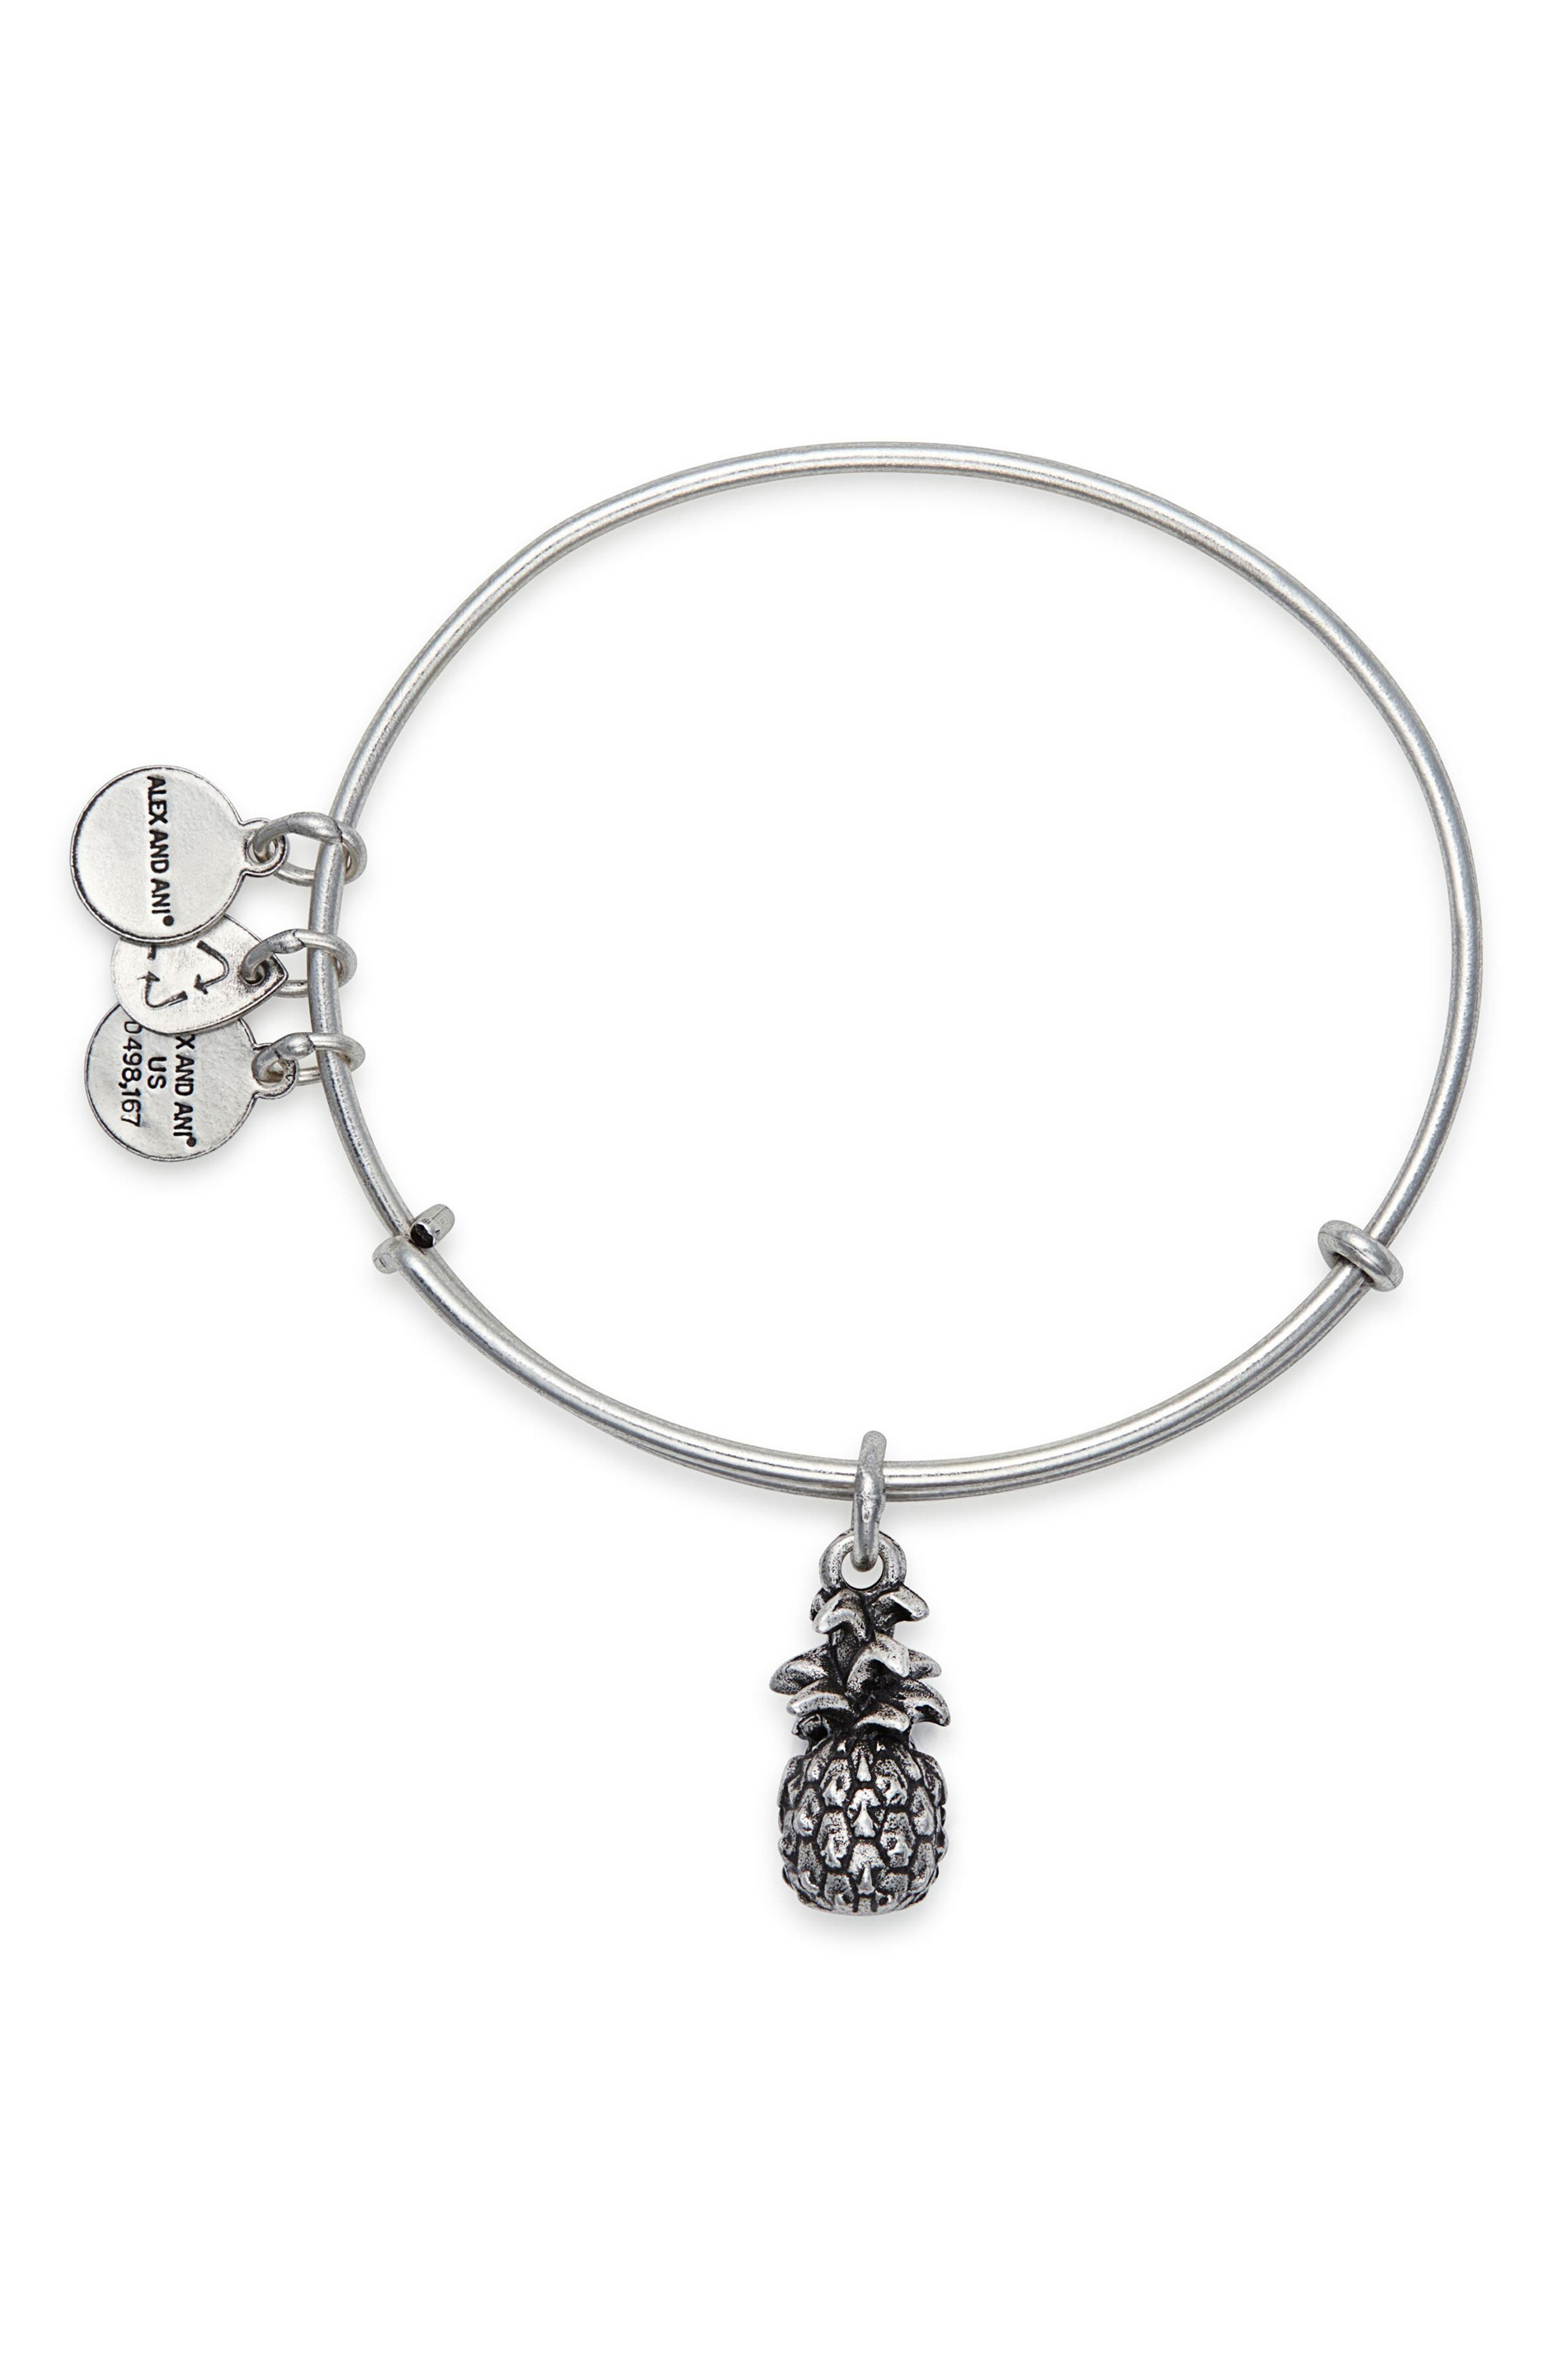 Pineapple Adjustable Wire Bangle,                             Alternate thumbnail 2, color,                             RUSSIAN SILVER